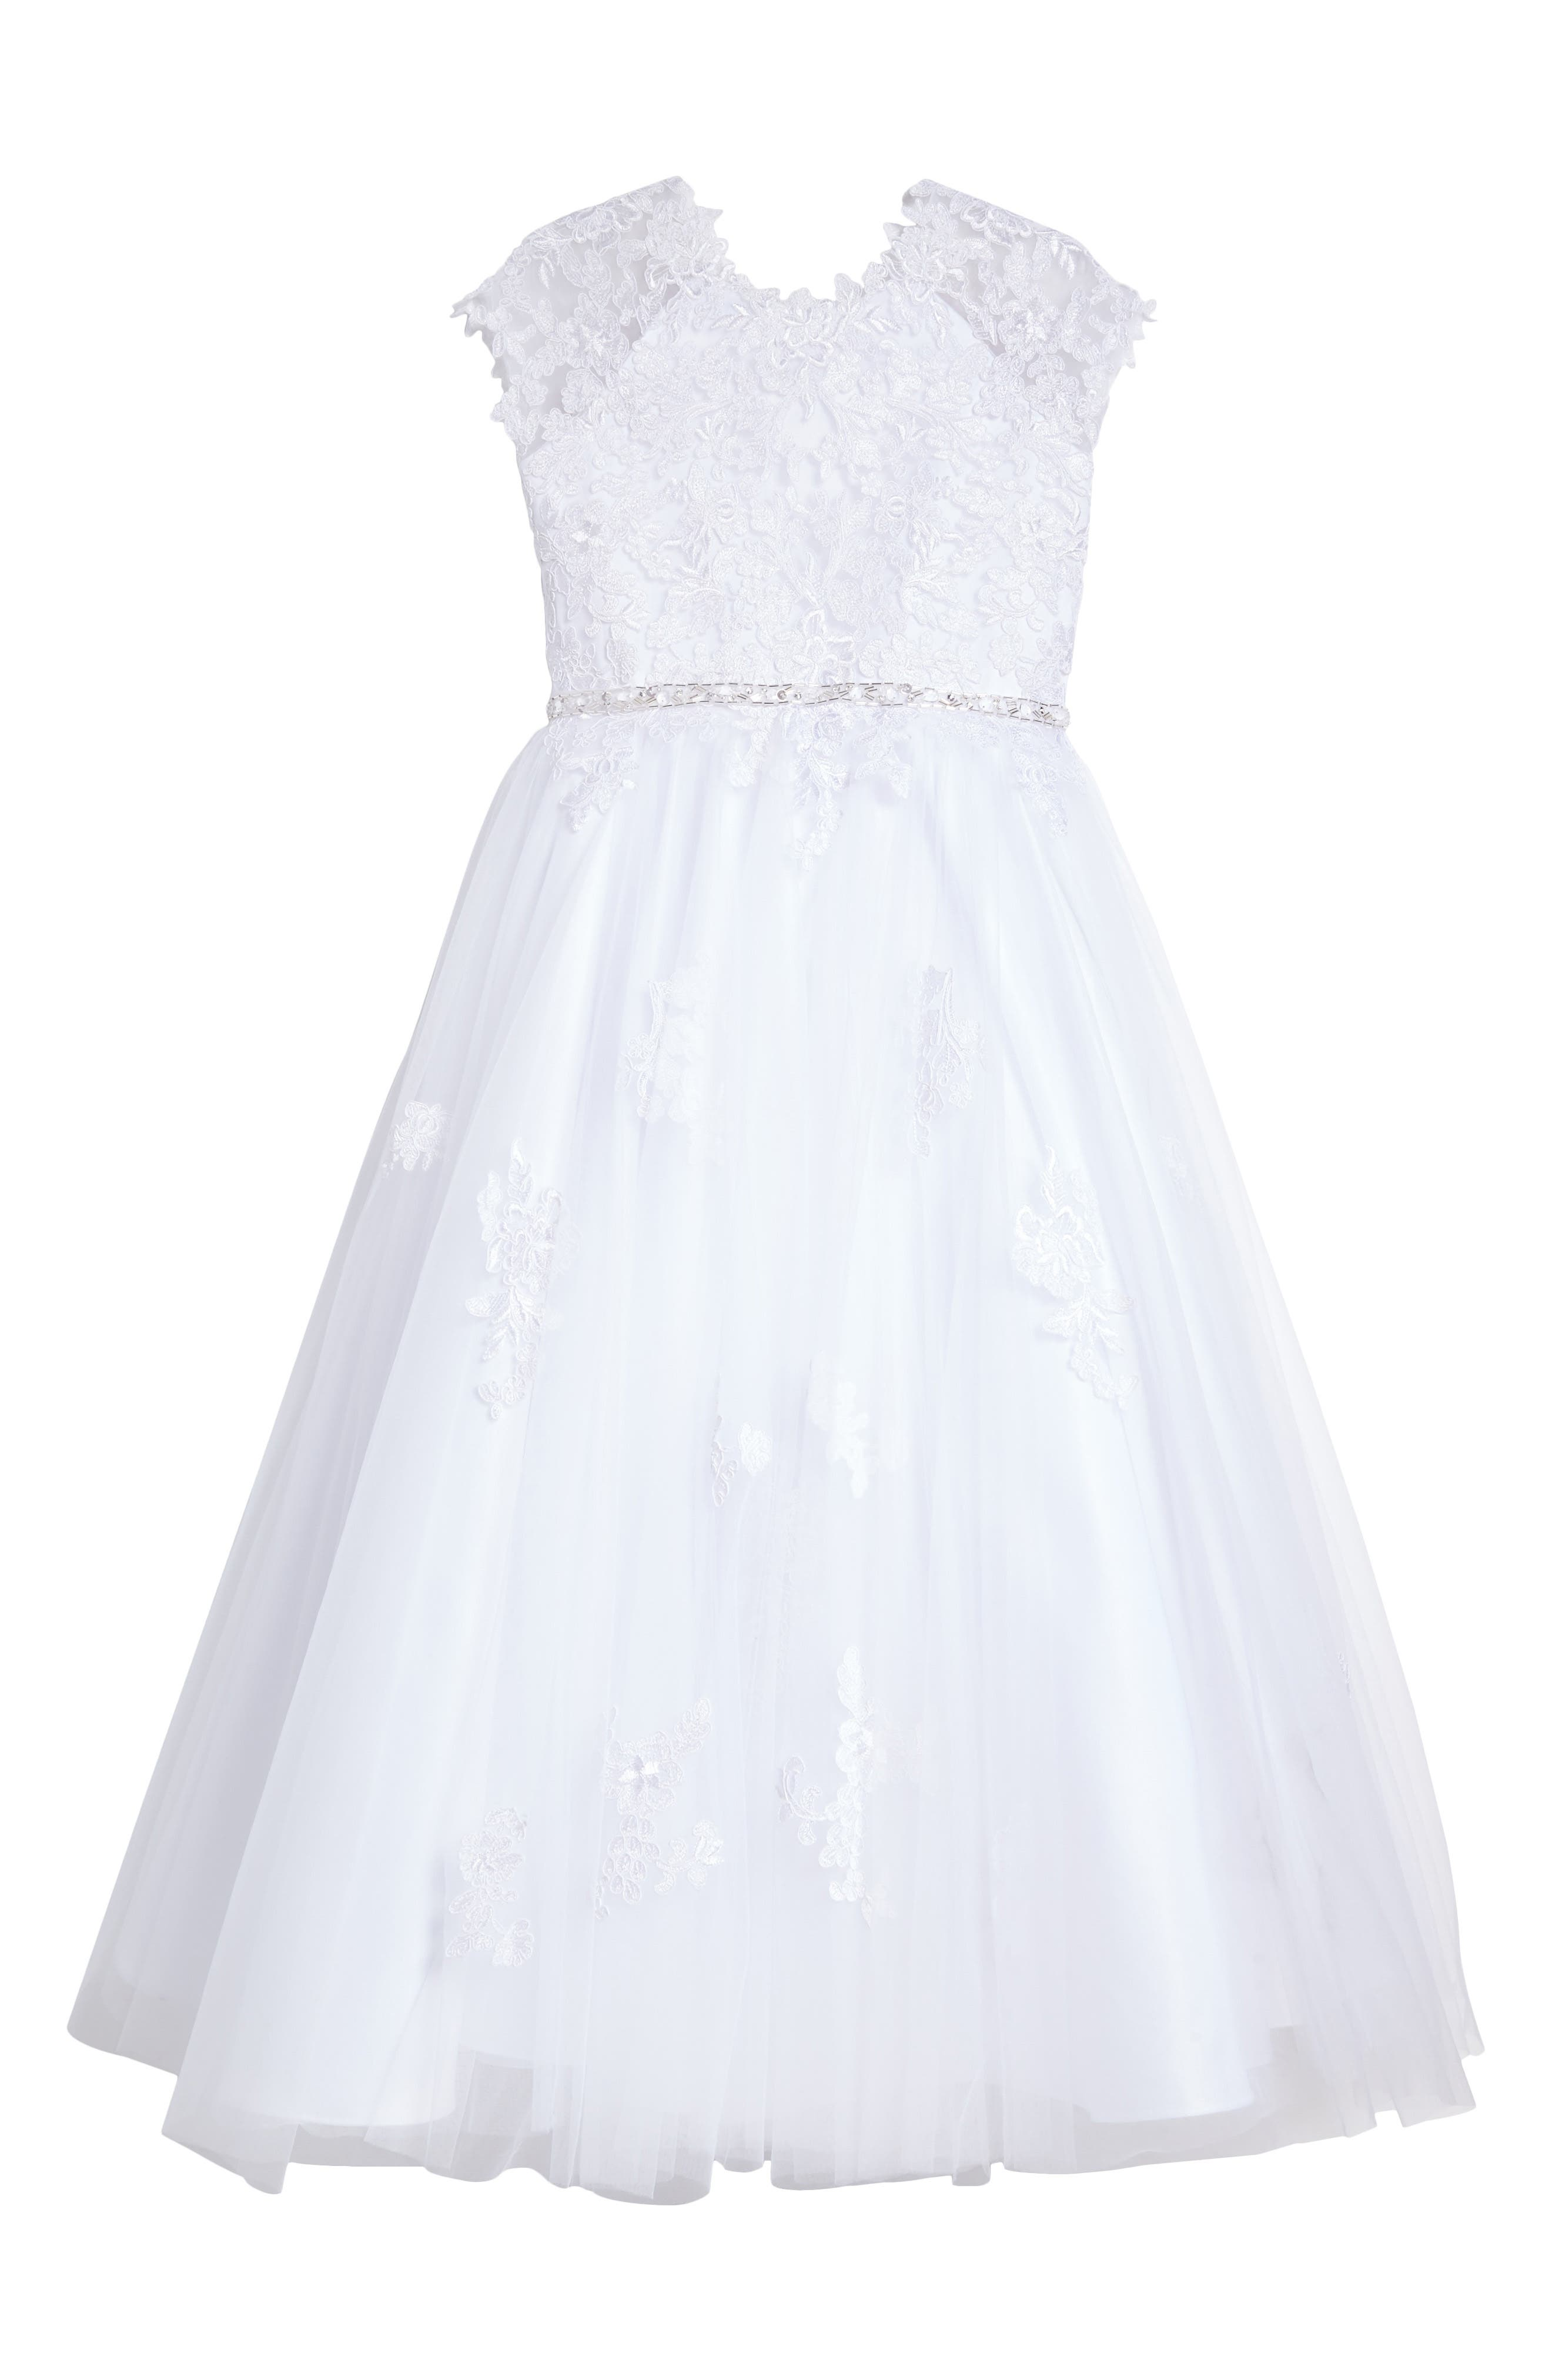 Lace Appliqué Tulle First Communion Dress,                         Main,                         color, White